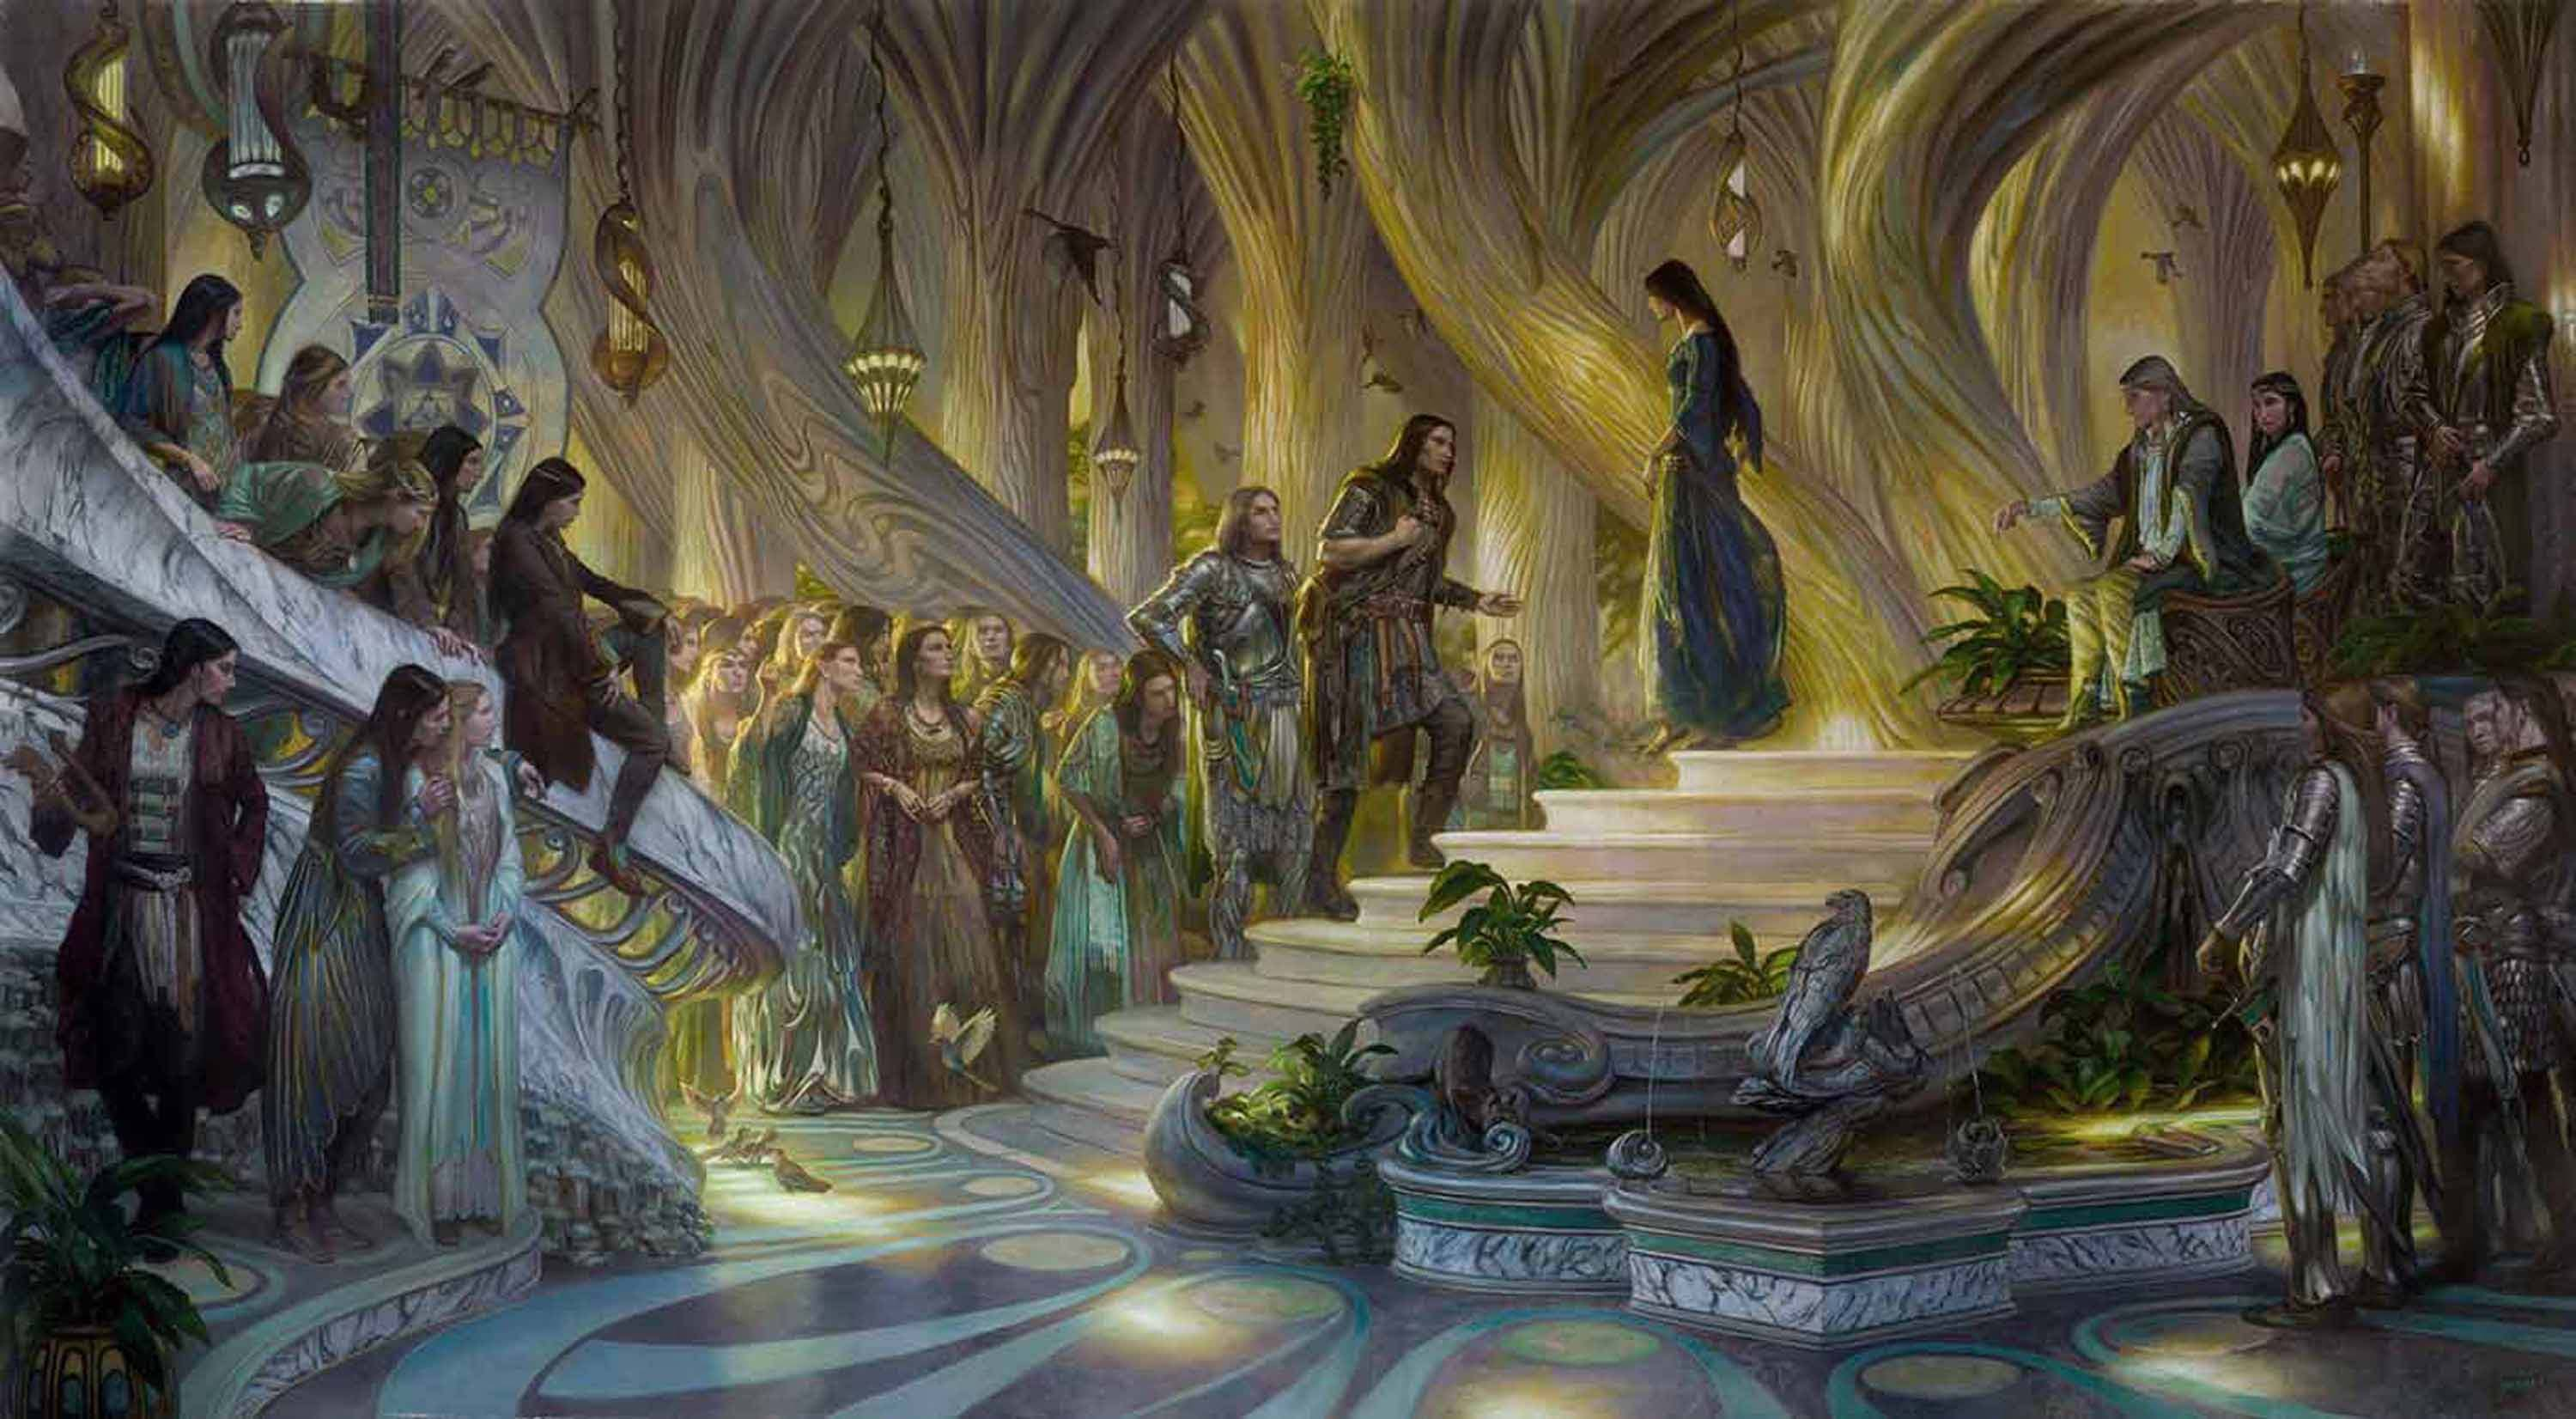 "Beren and Luthien in the Court of Thingol and Melian 60"" x 110""  Oil on Linen  2015 the declaration of love for Luthien by Beren and Thingol's demand for a Silmaril, from J.R.R. Tolkien's The Silmarillion private collection"